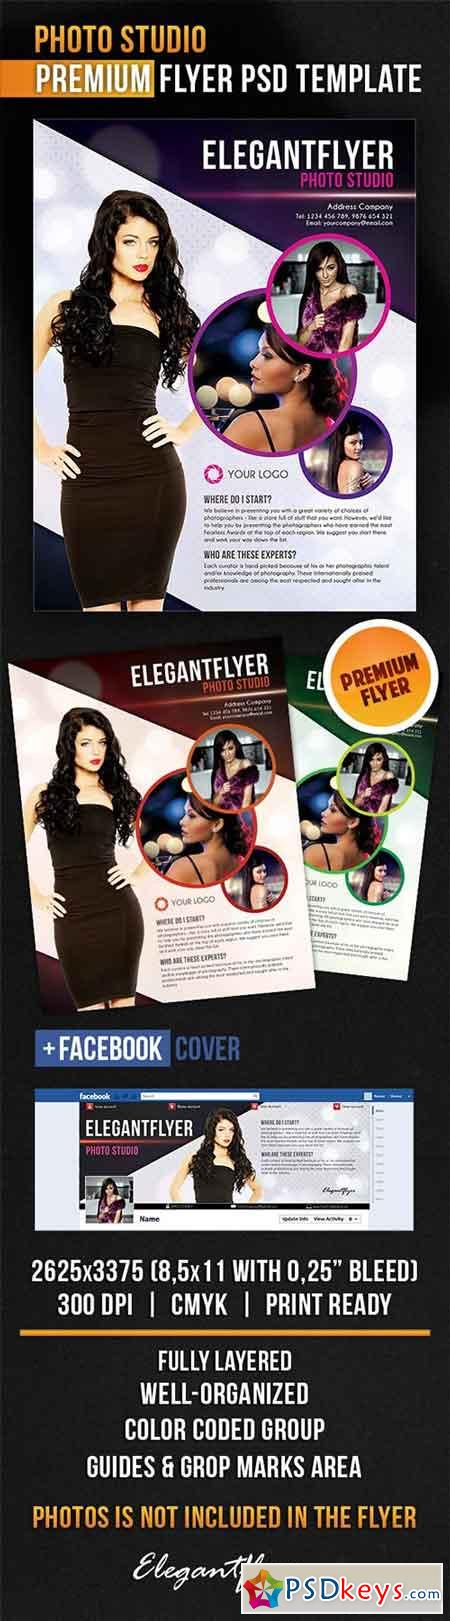 Photo Studio Flyer PSD Template + Facebook Cover